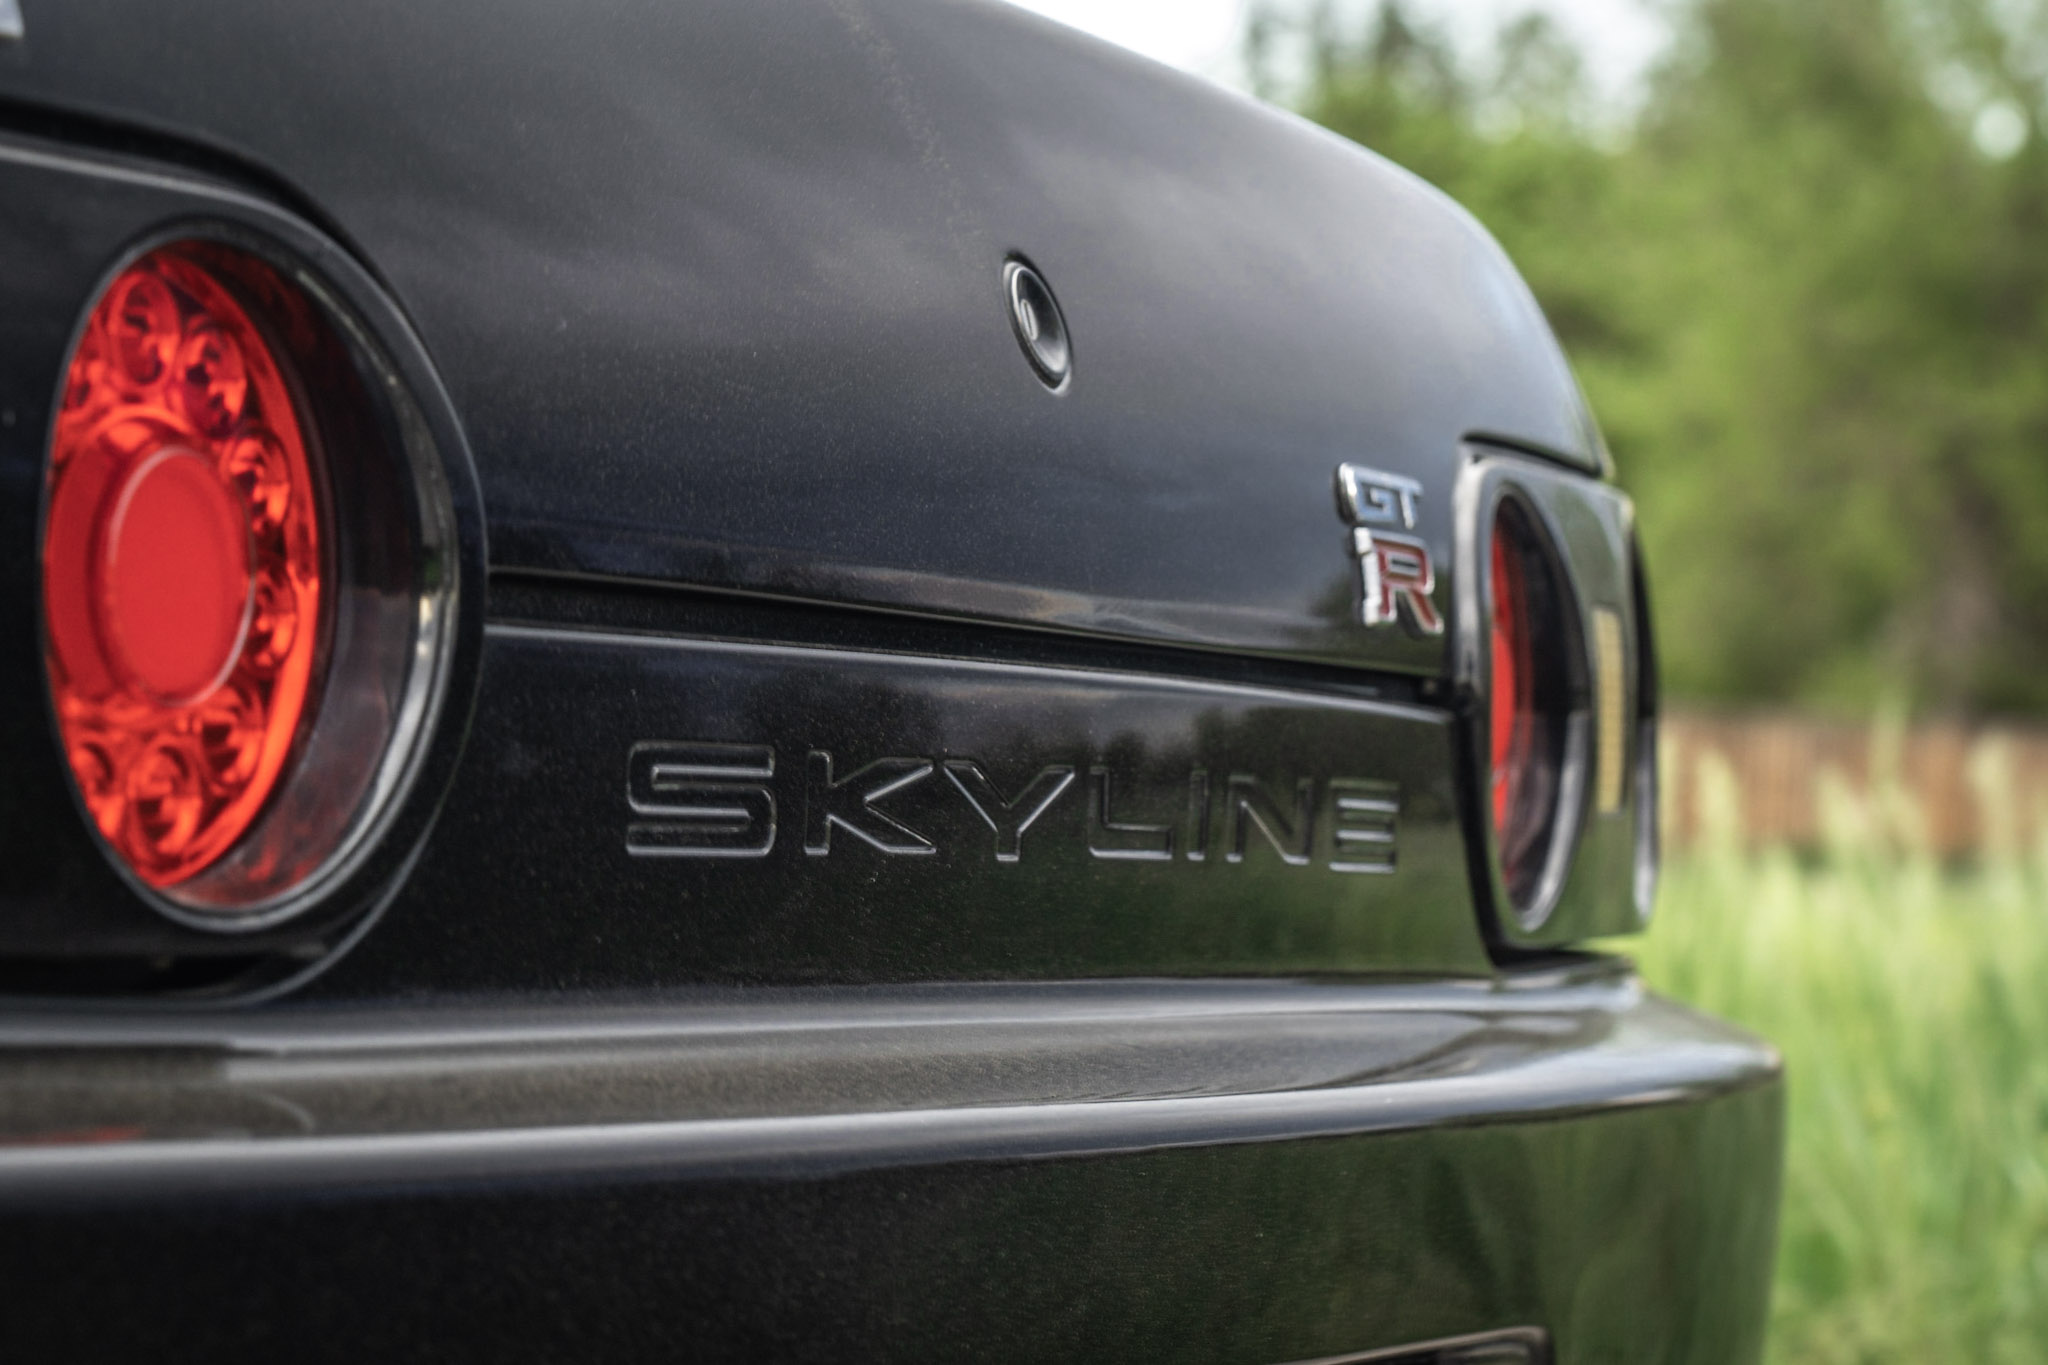 skyline-gtr-r32-detail-brian-laiche-car-photography-1.jpg